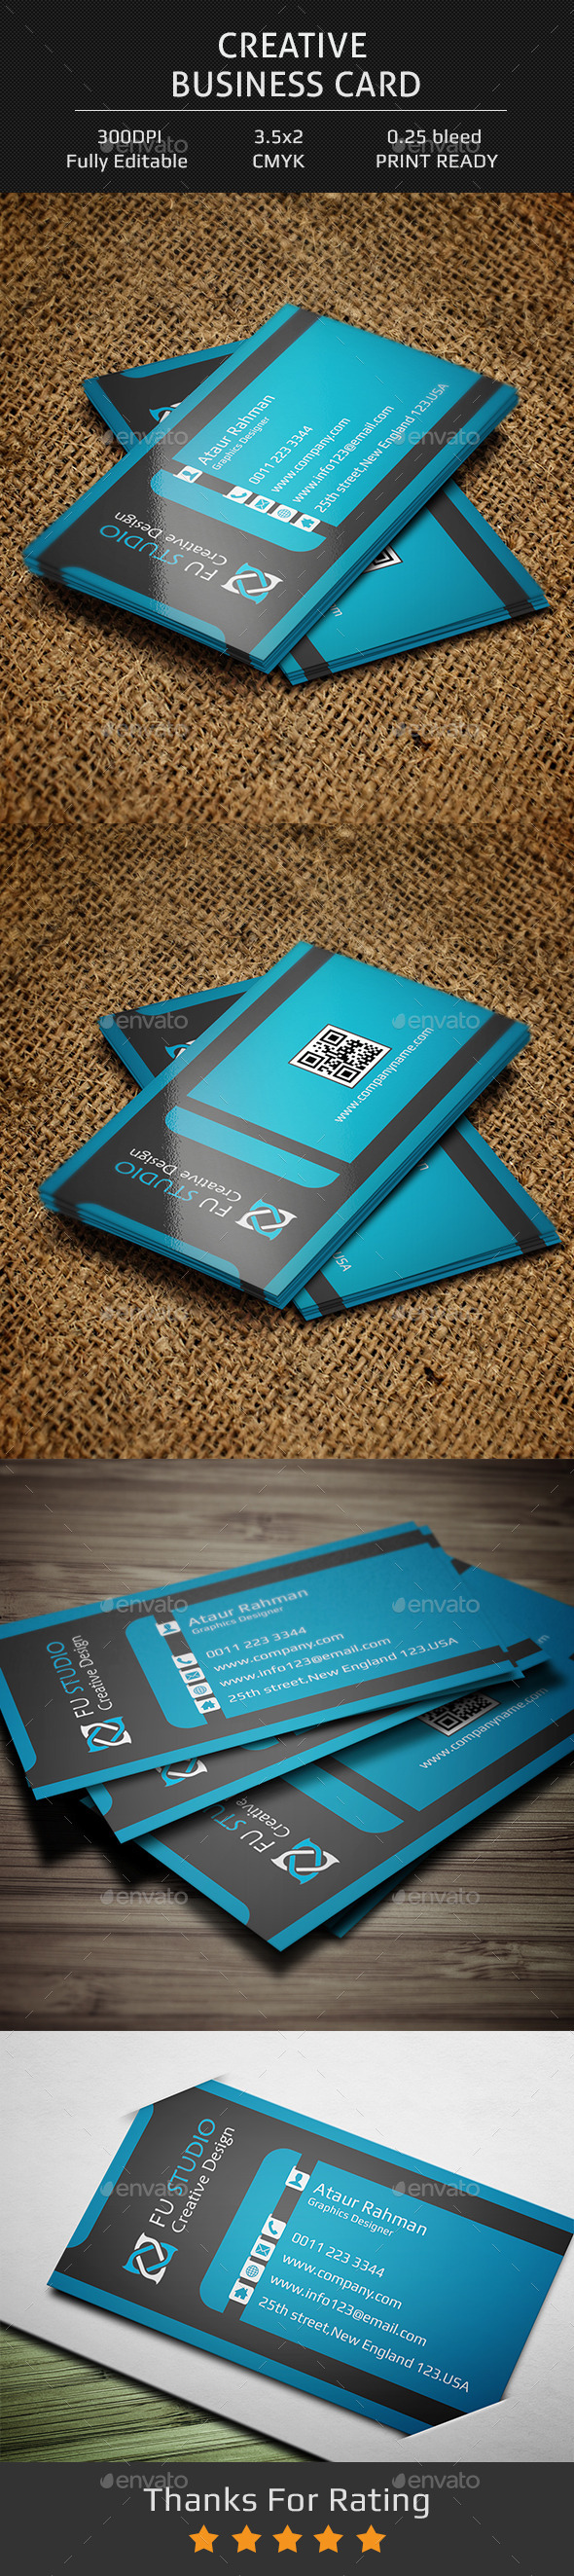 GraphicRiver Creative Business Card V6 11912789